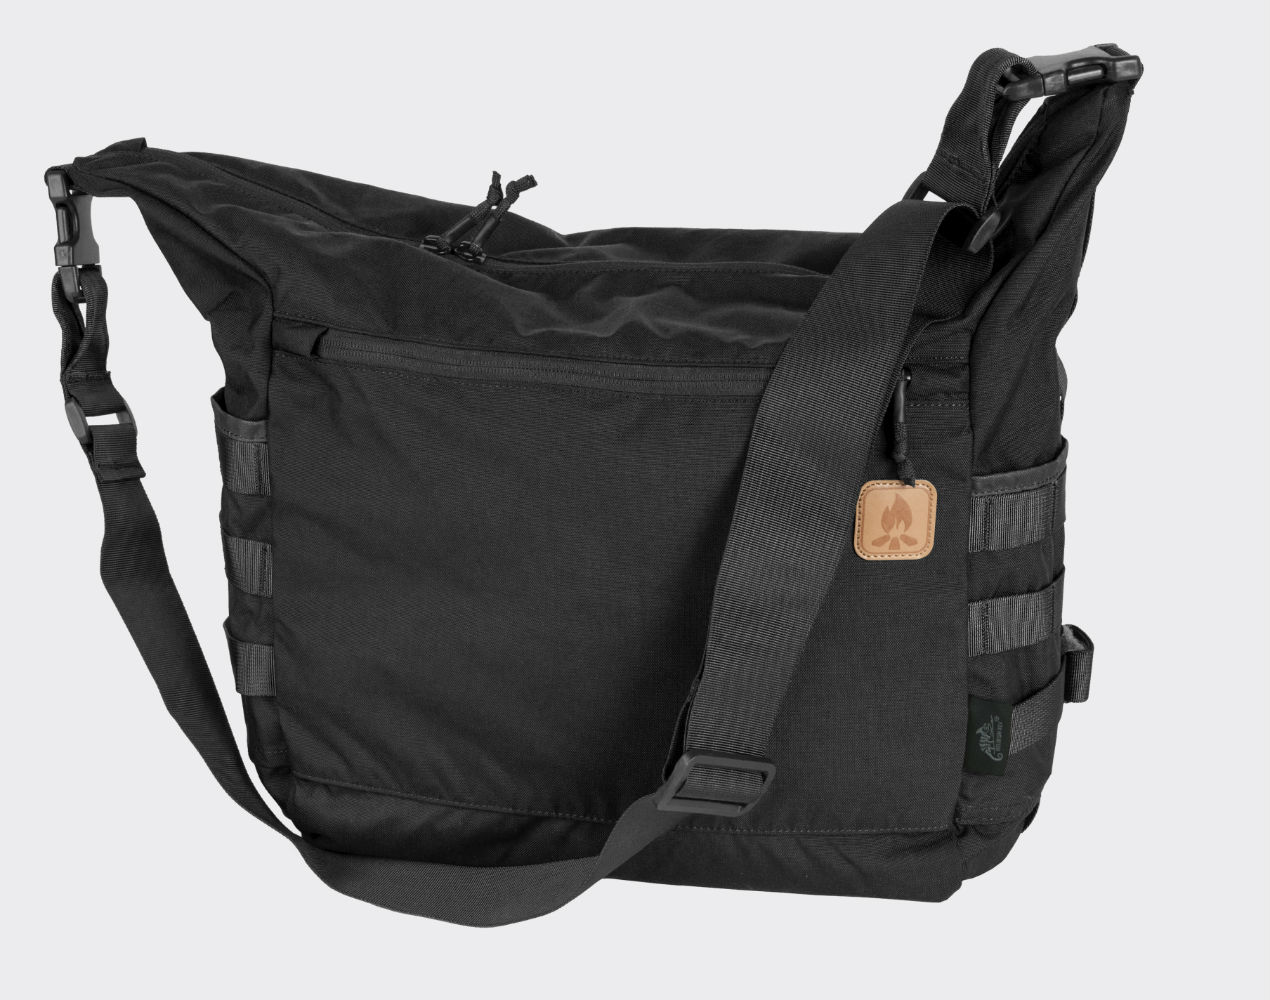 Helikon BUSHCRAFT SATCHEL Bag Cordura Umhängetasche Outdoor Tasche Black.